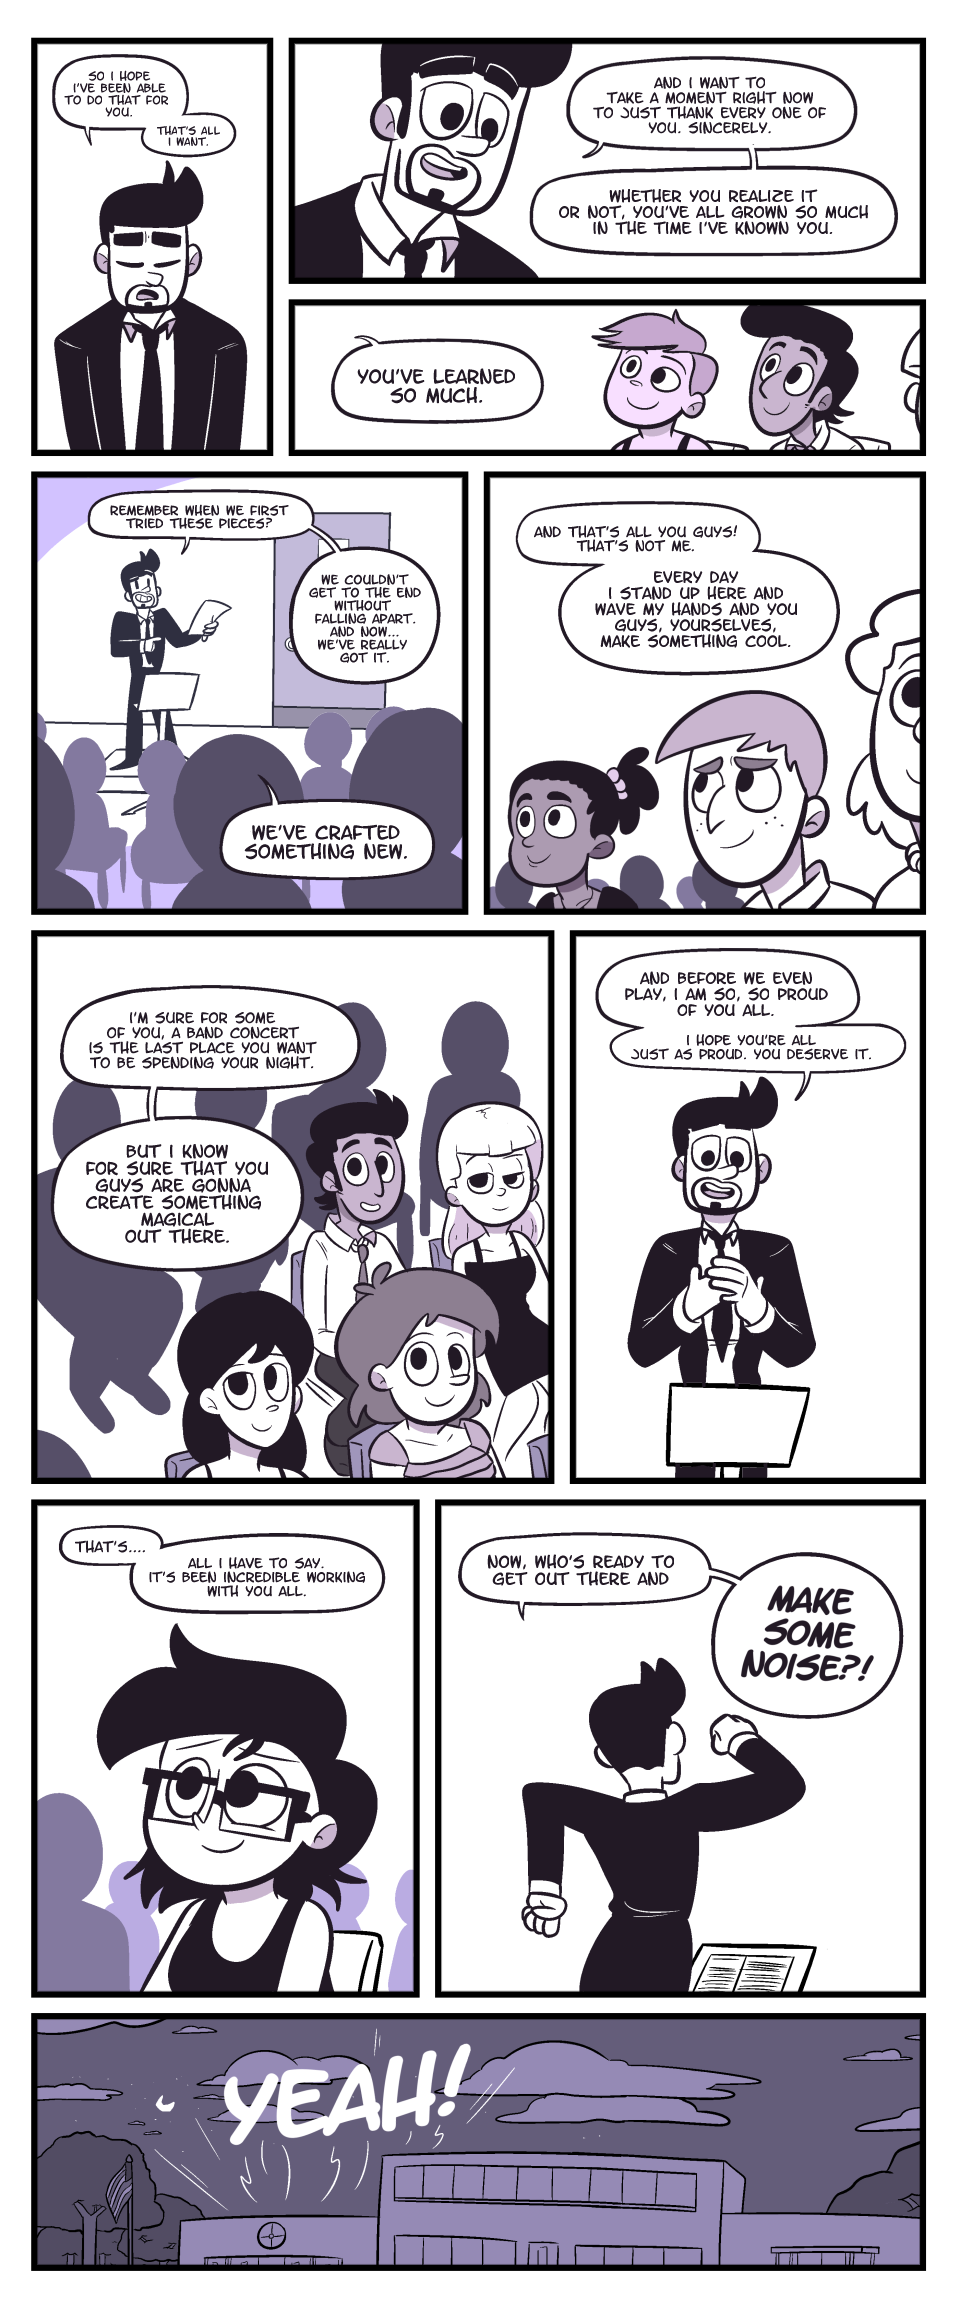 Page 436: Proud